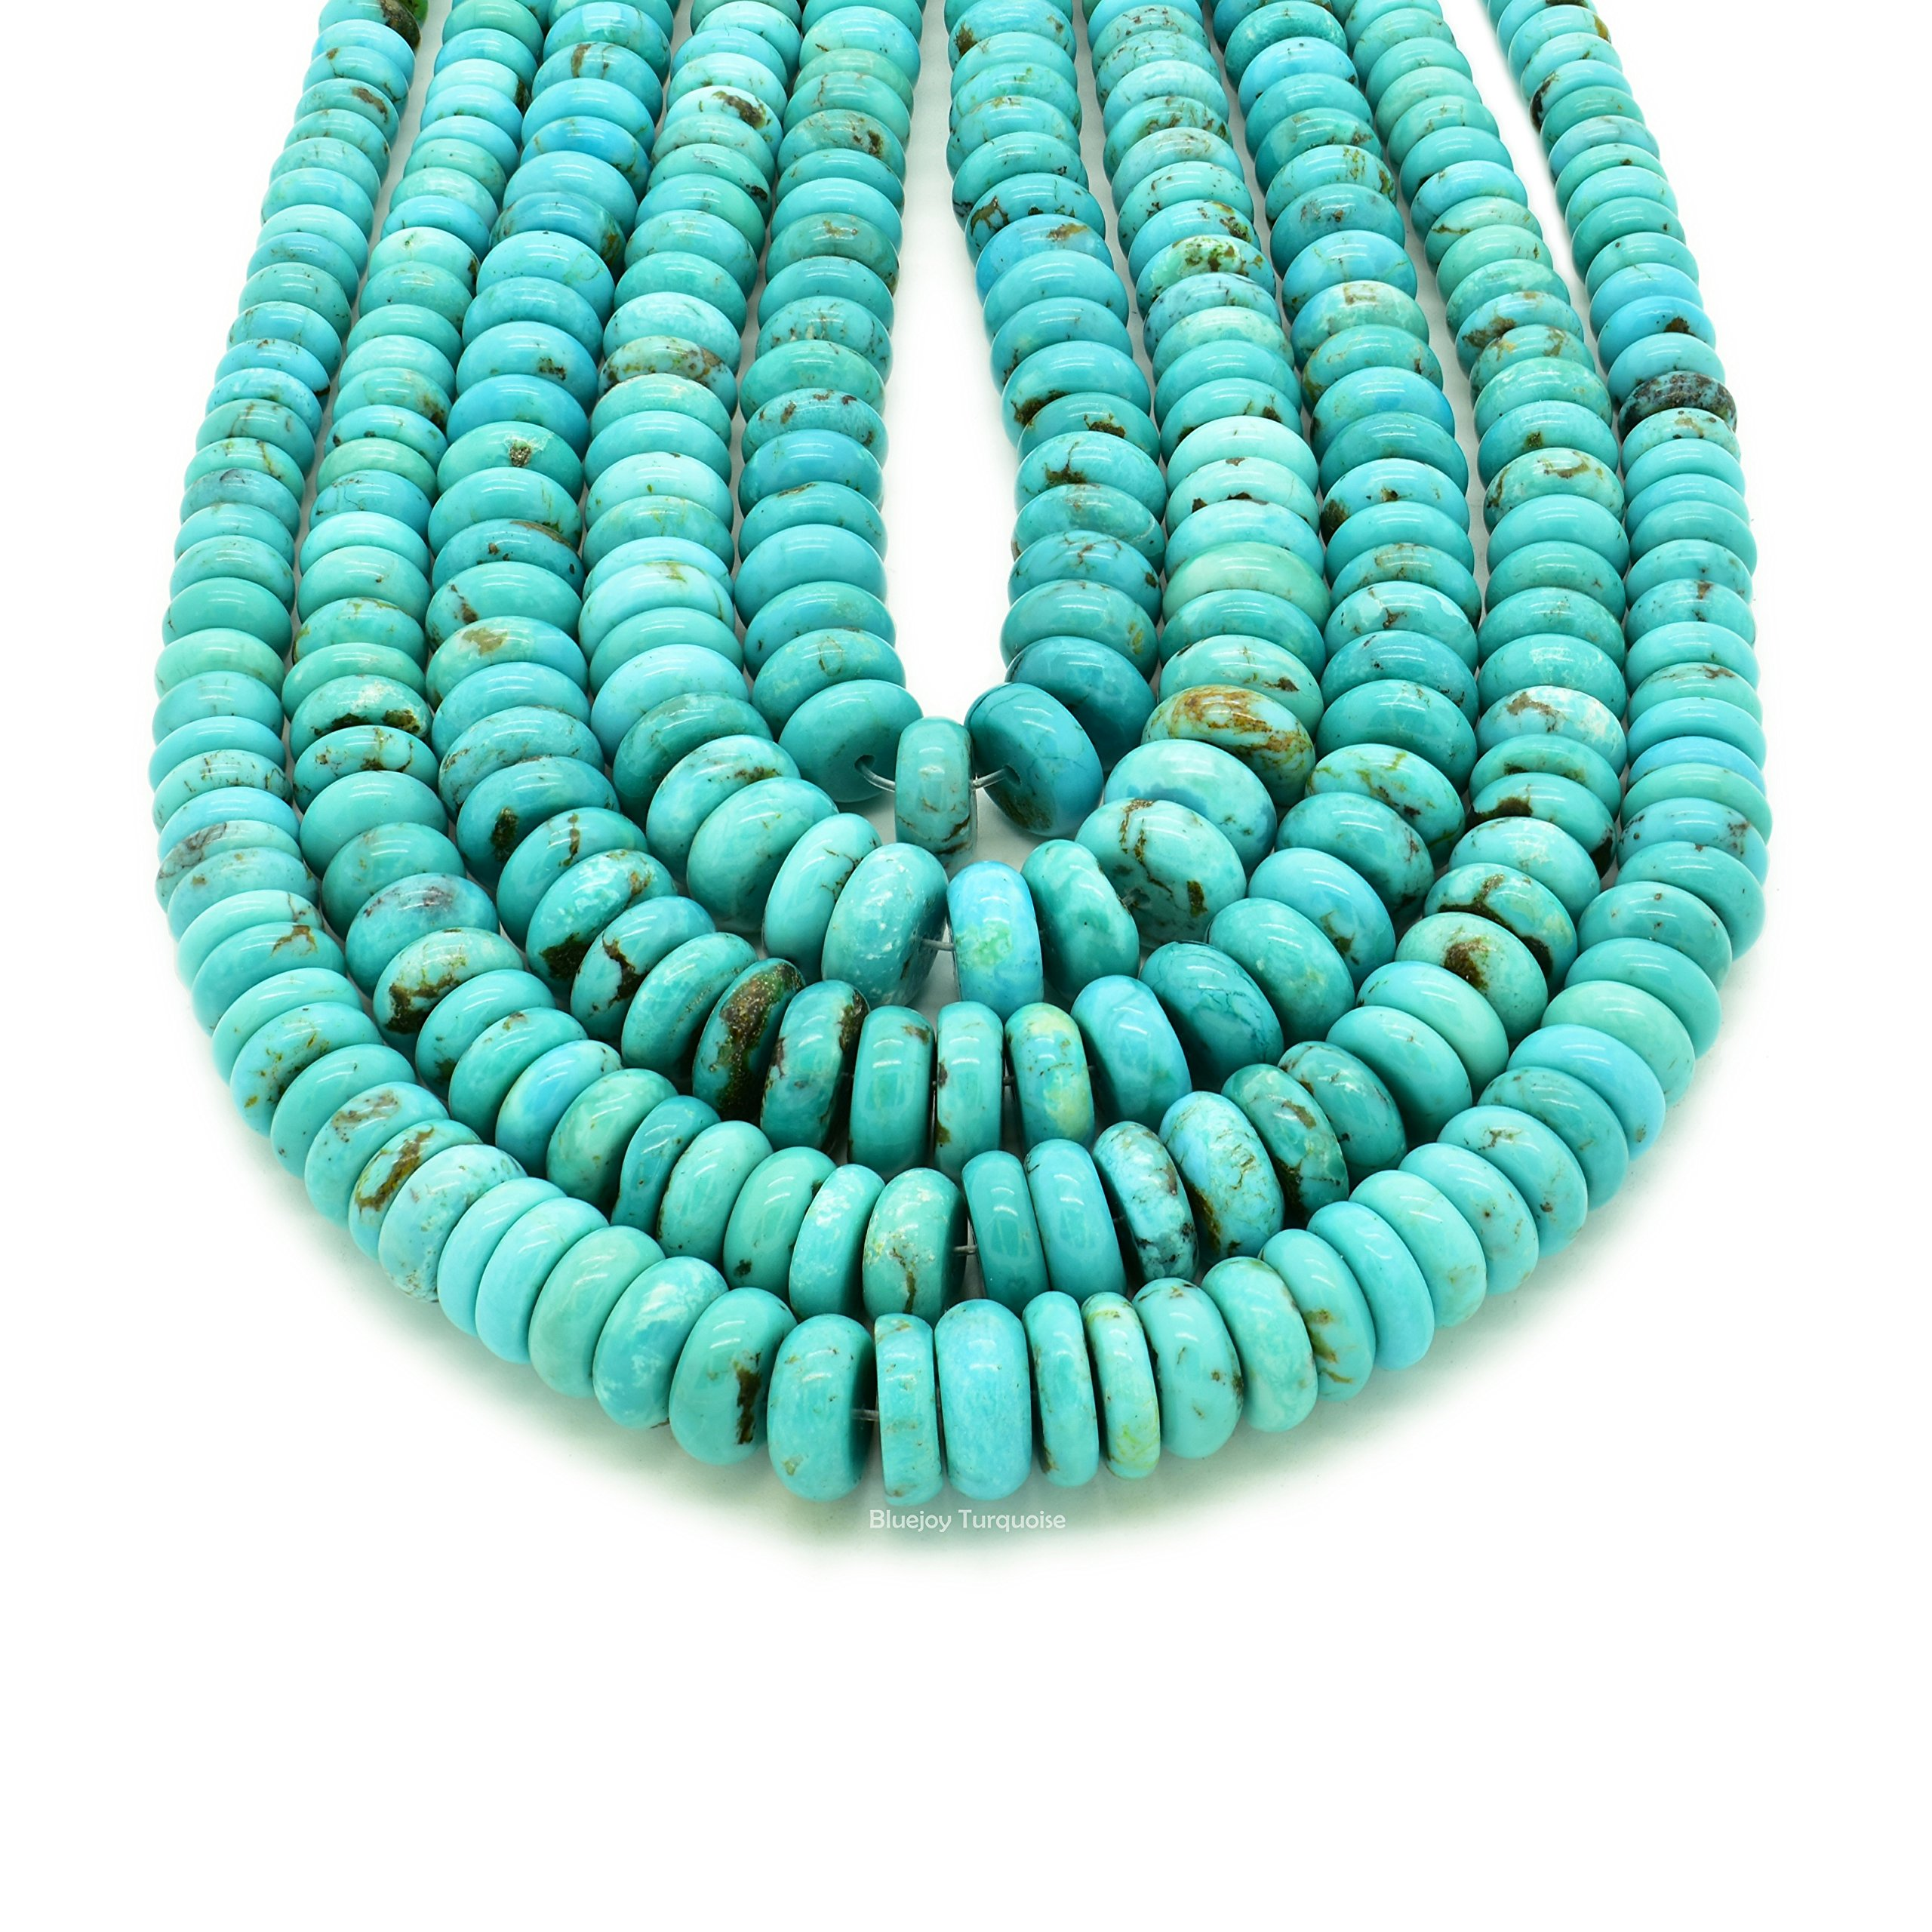 Bluejoy Genuine Natural American Turquoise Graduated Button Bead 16 inch Strand for Jewelry Making (5-9mm) by Bluejoy Turquoise